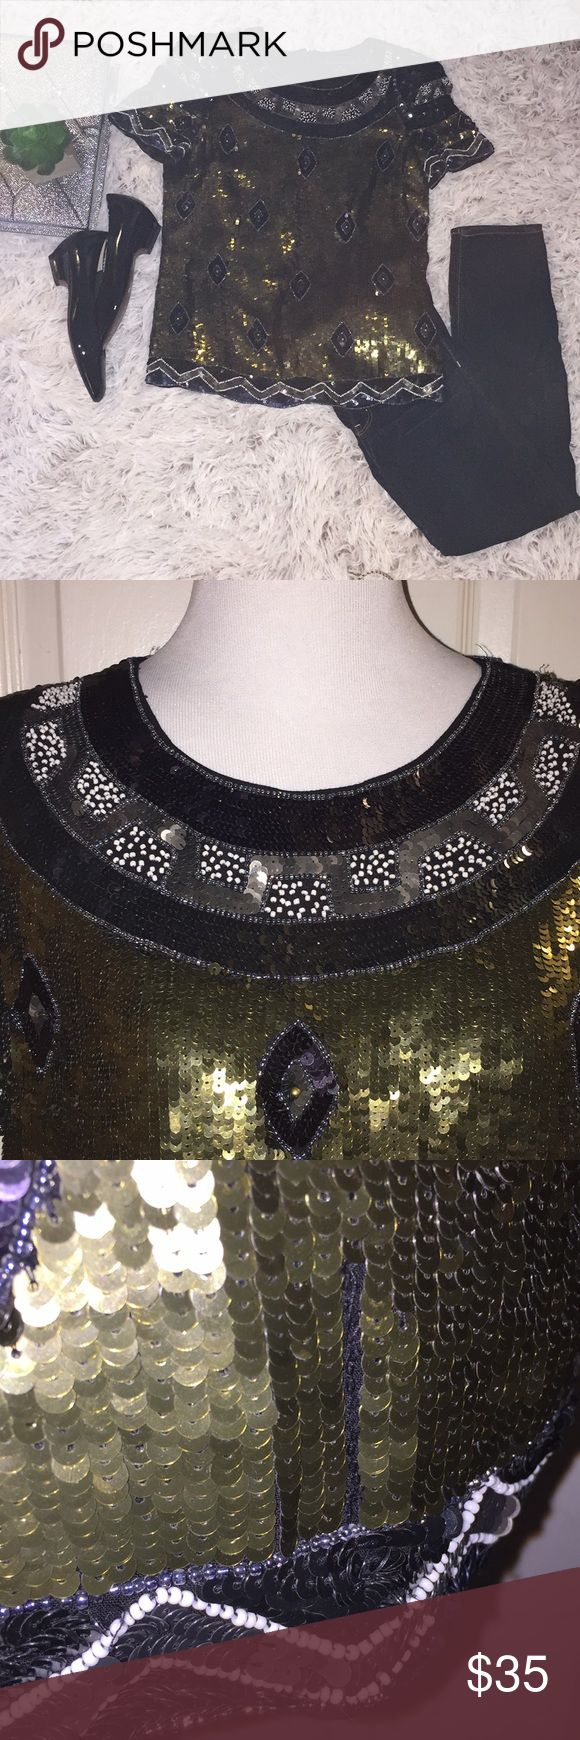 French Connection Sequin Beaded Top Gold & Black A Beautiful and Regal Detailed Fully Sequined and Beaded Top. Size 6. Lightly Padded Shoulders. 3/4 Zipper Back. Fully Lined. A Small Area on Left bottom Missing a few Sequins (see 3rd pic) but not noticeable IMO as blouse is so ornate. Pair with Leather Leggings and Heels or with Jeans and Boots. French Connection Tops Blouses